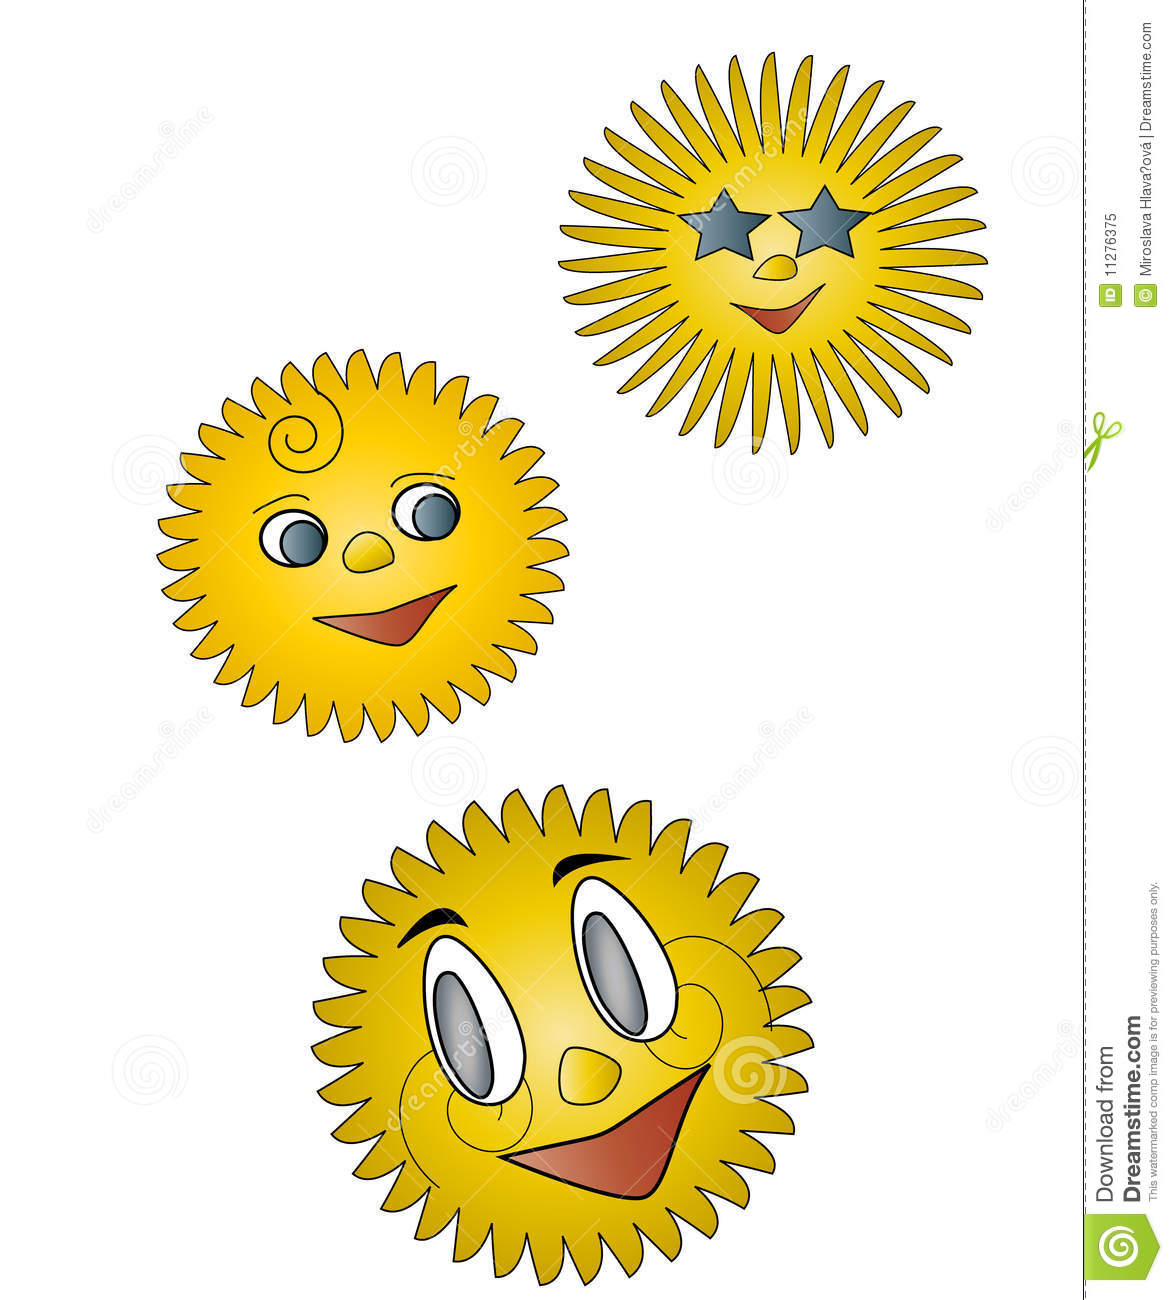 Cartoon Sunshine Royalty Free Stock Photo - Image: 11276375